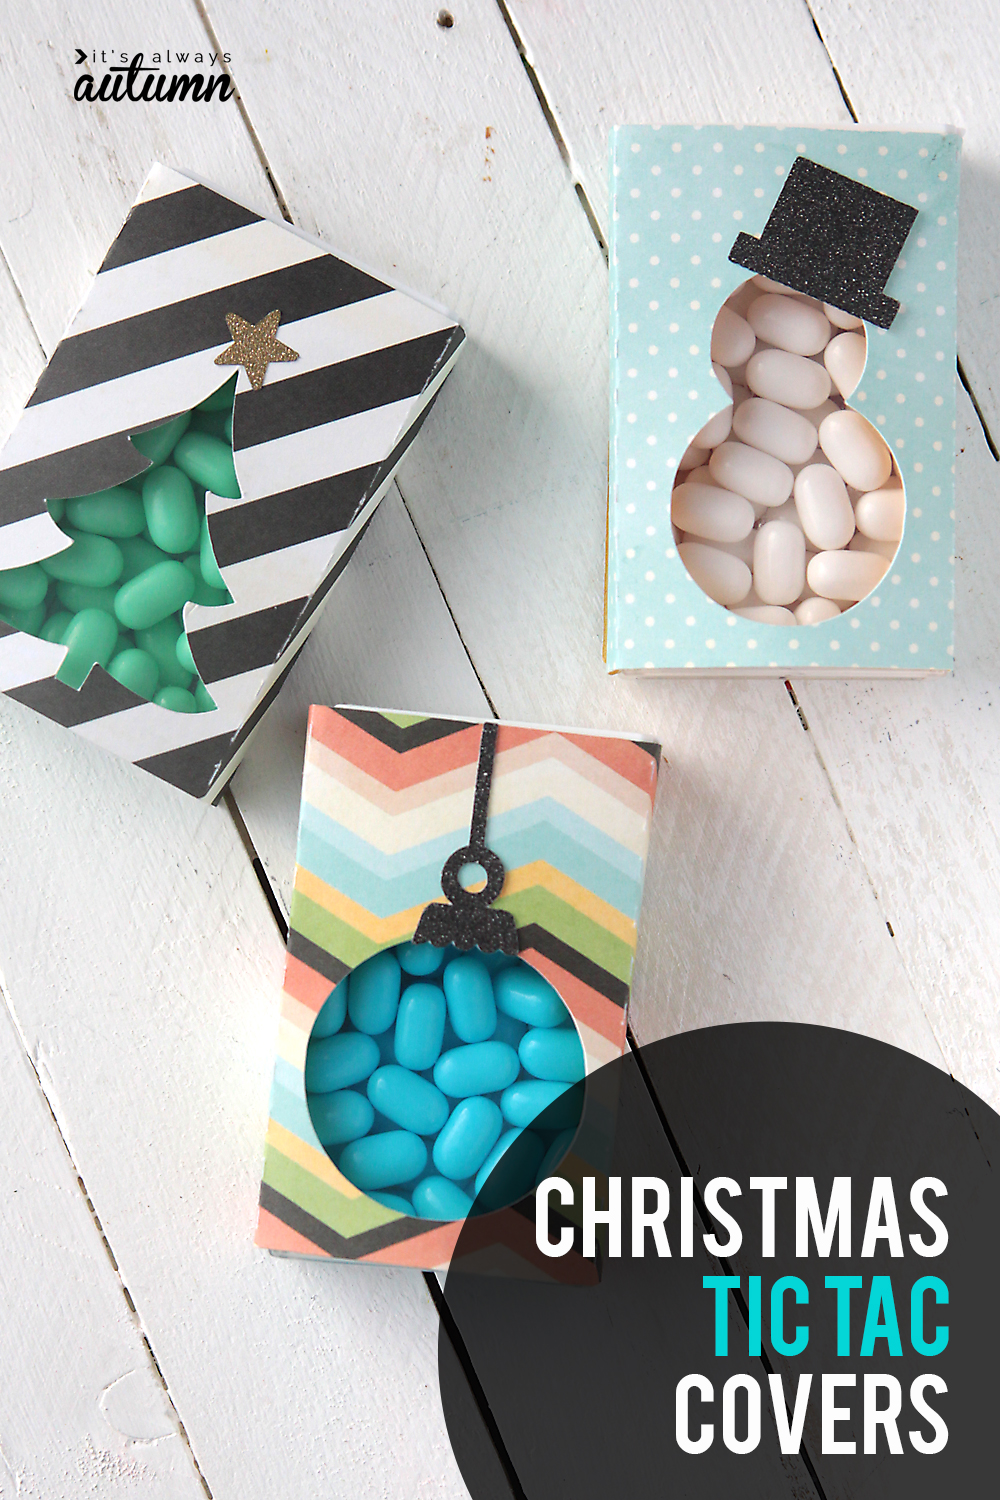 Cute little Christmas tic tac covers turn a package of mints into an adorable Christmas gift!